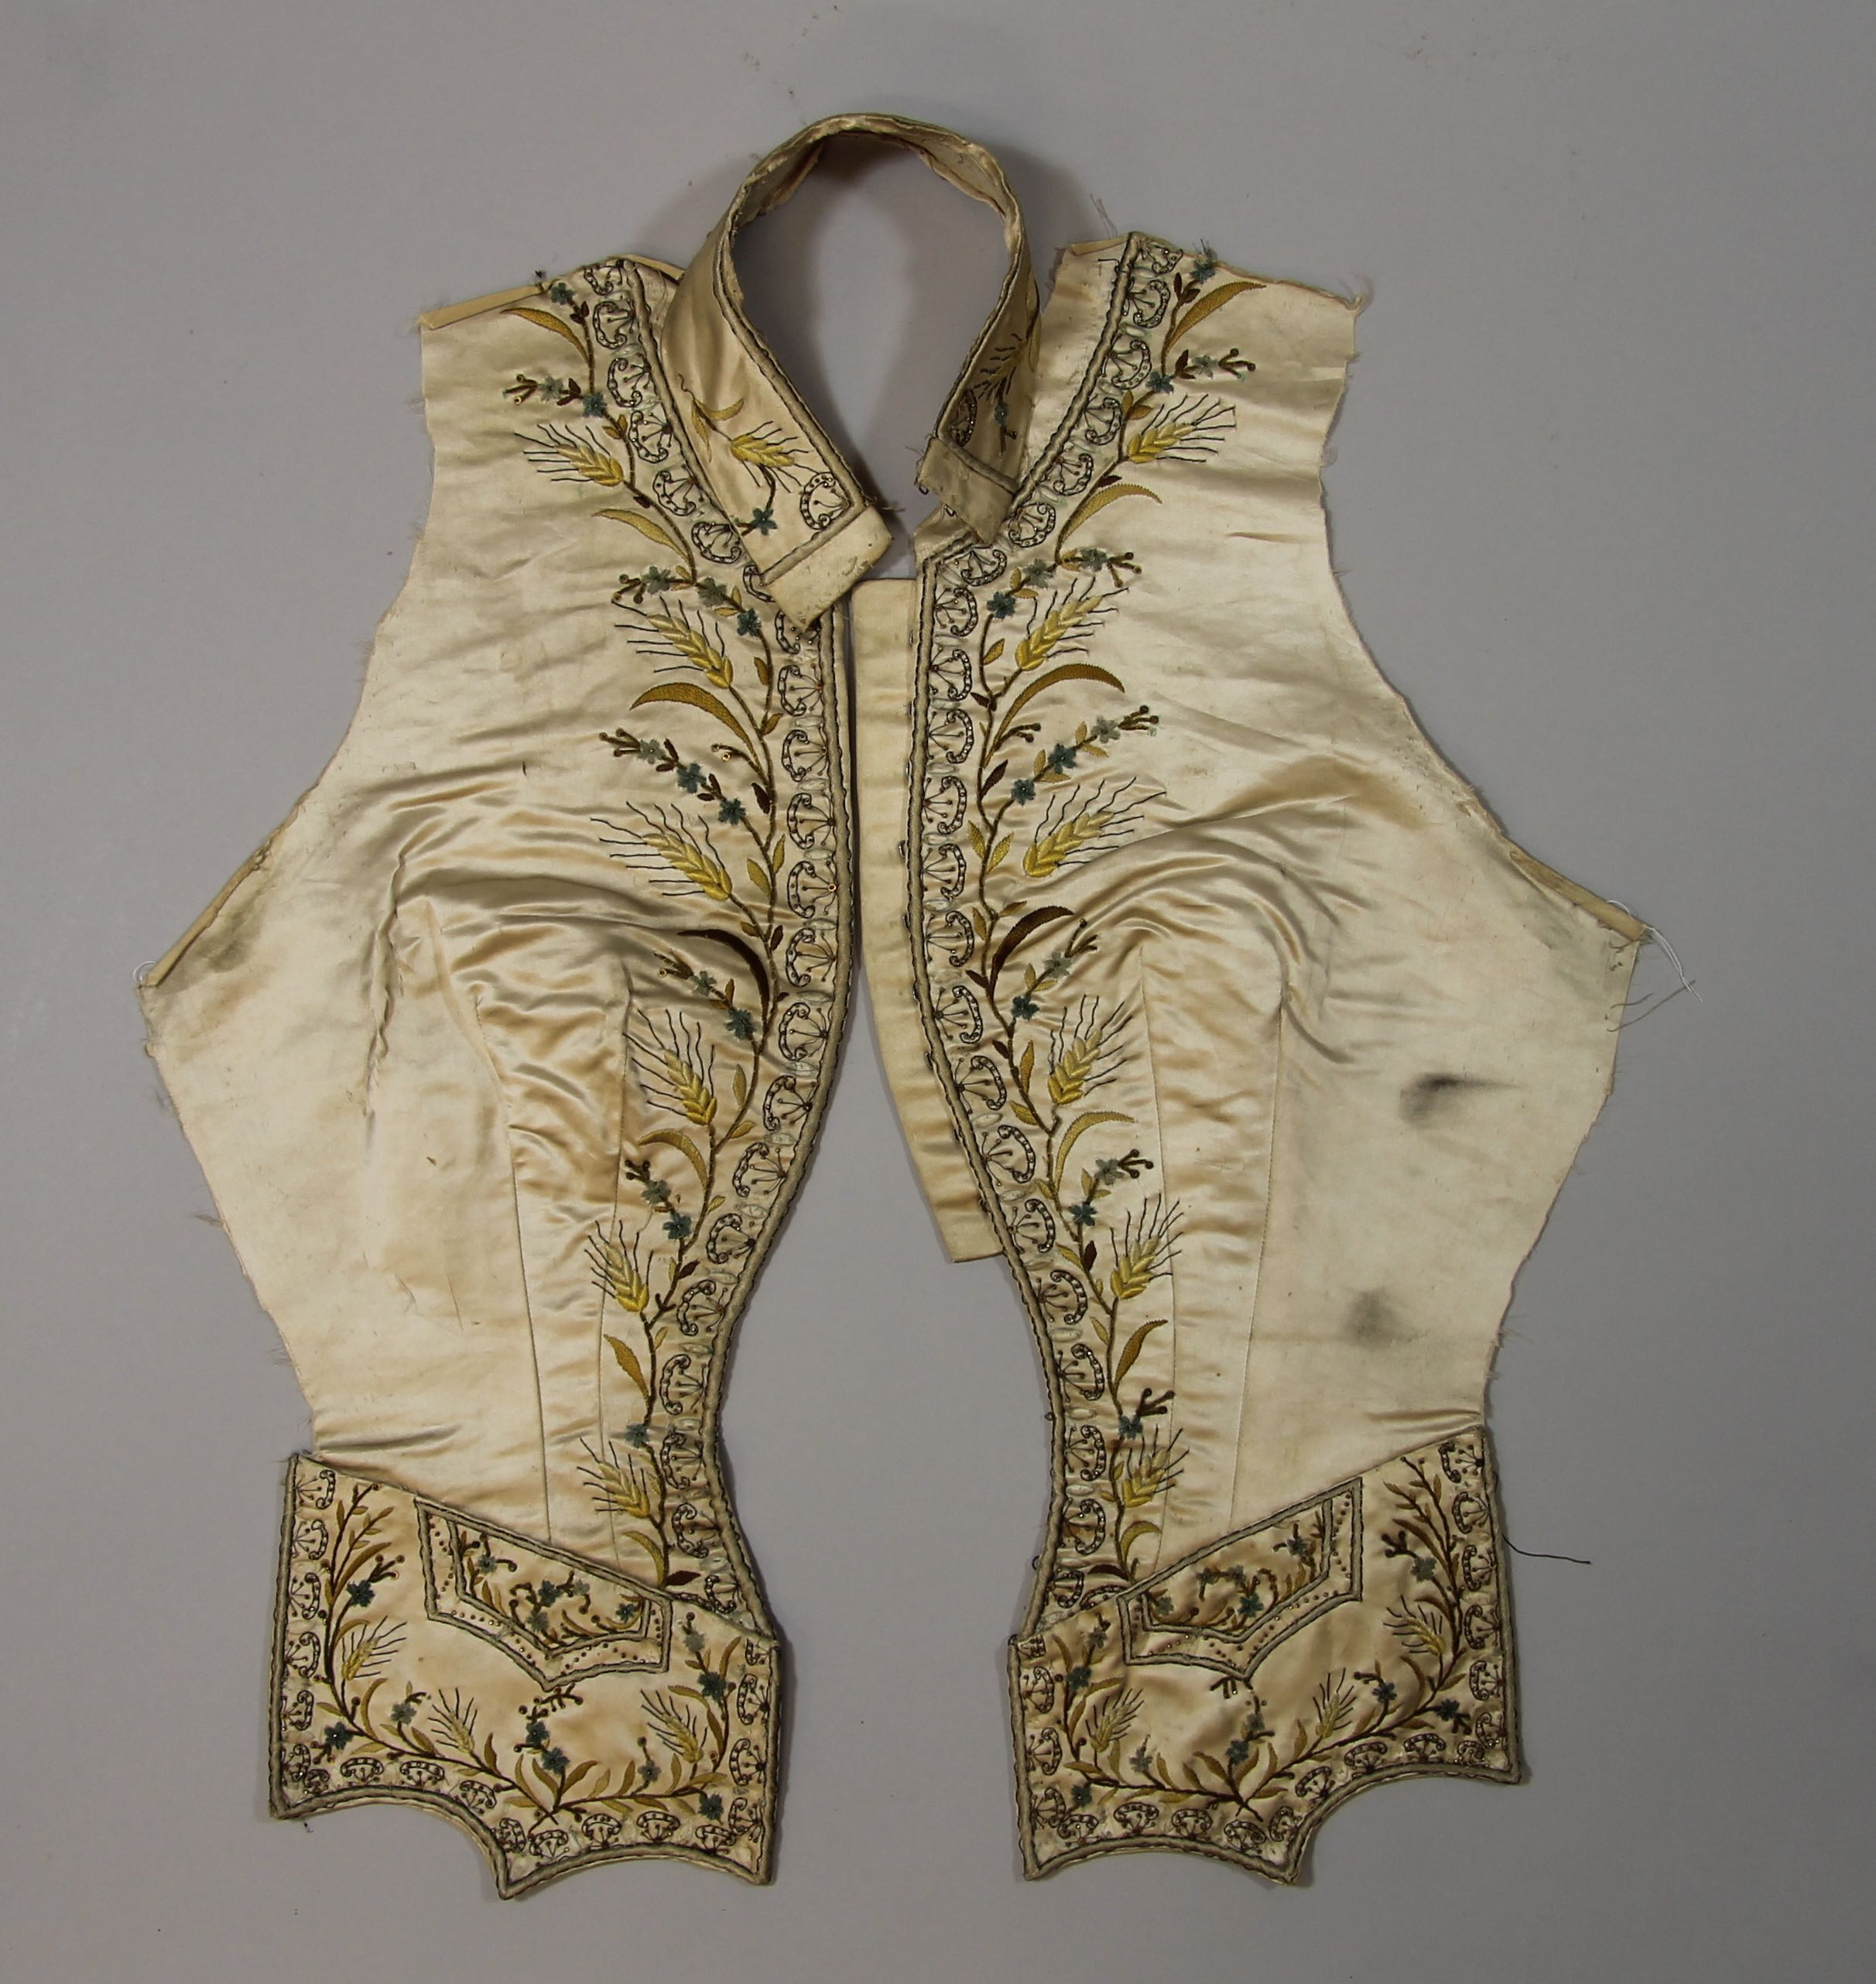 Two front sections of a woman's embroidered vest